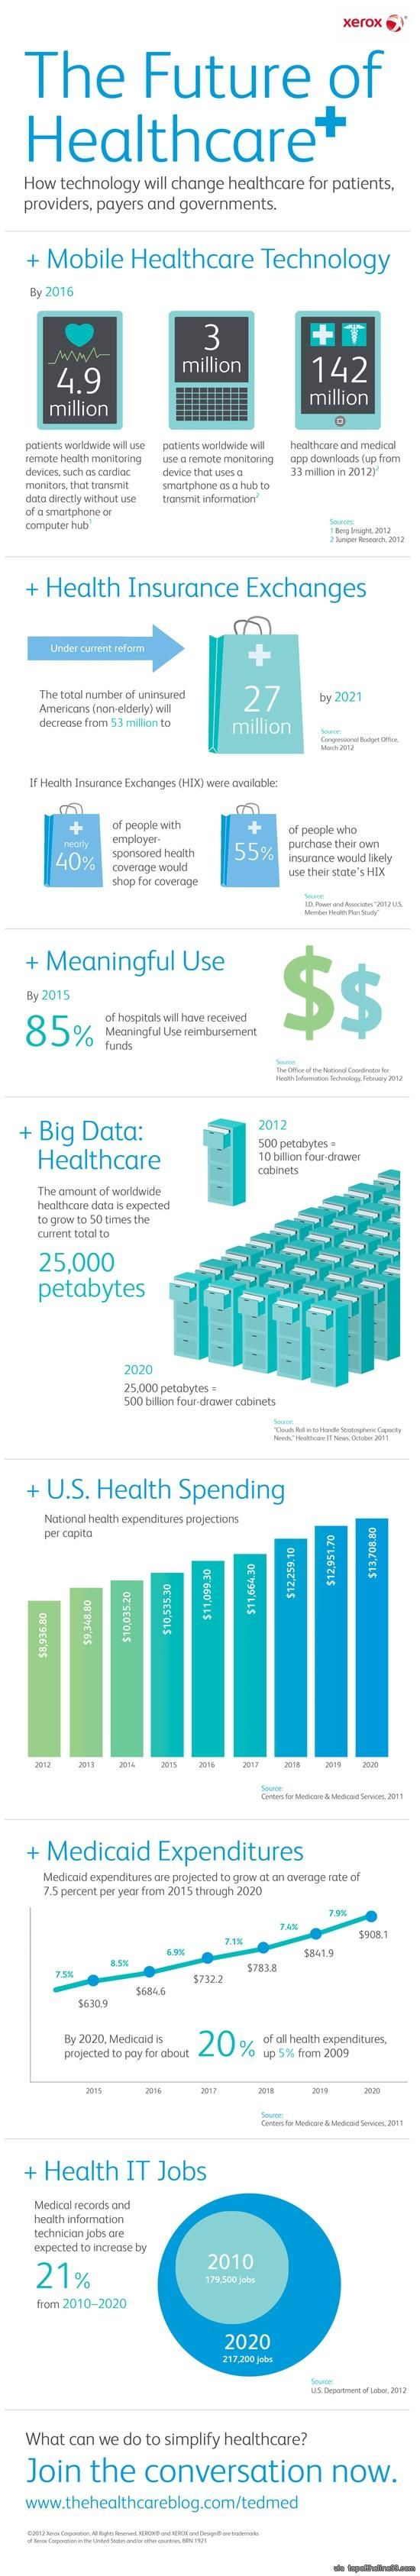 The Future of Healthcare via topoftheline99.com - http://blog.hepcatsmarketing.com - check out our blog network for more news like this!